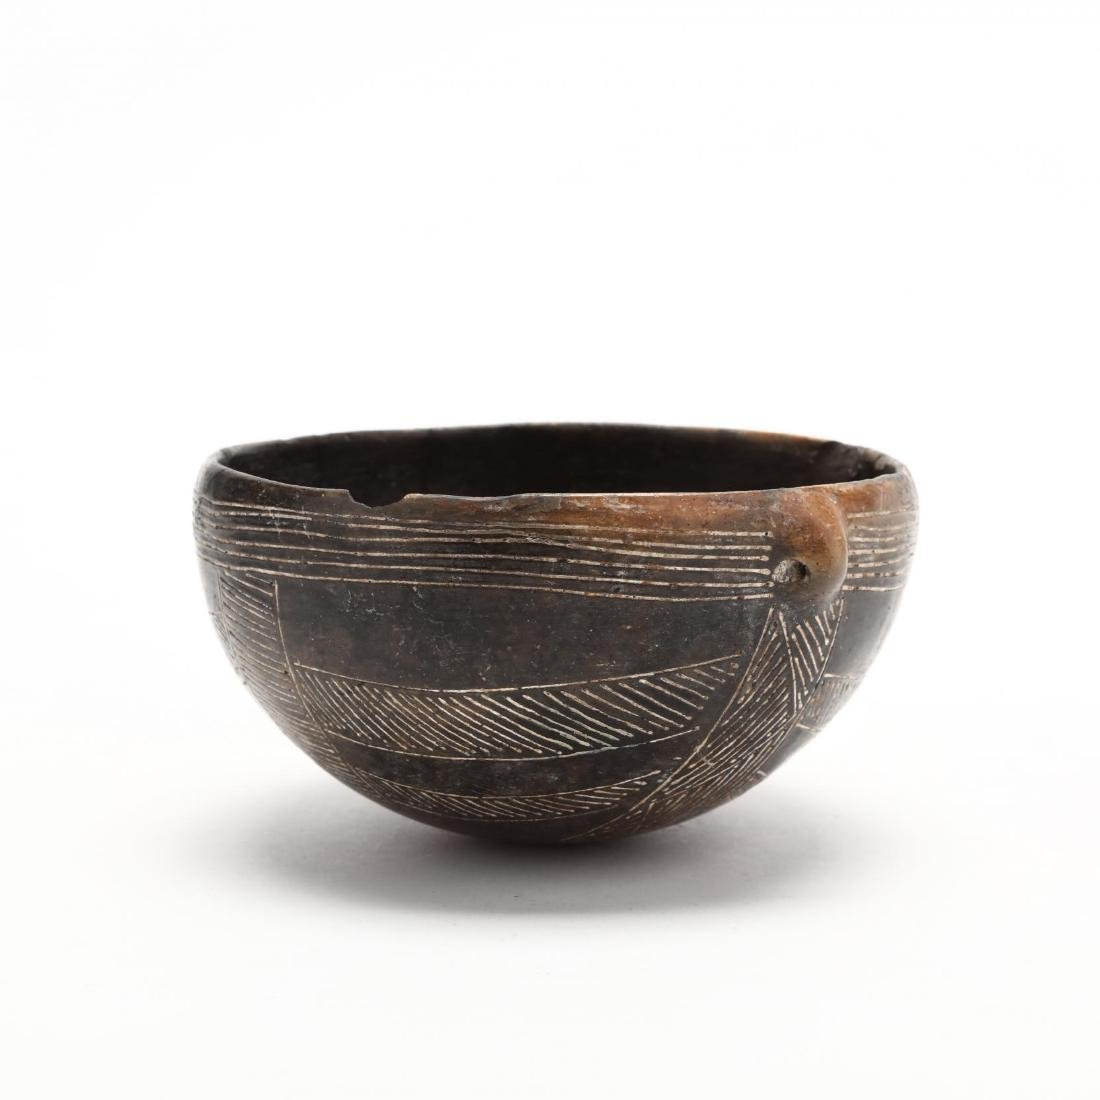 Cypriot Early Bronze Age Polished Black Ware Bowl - 5